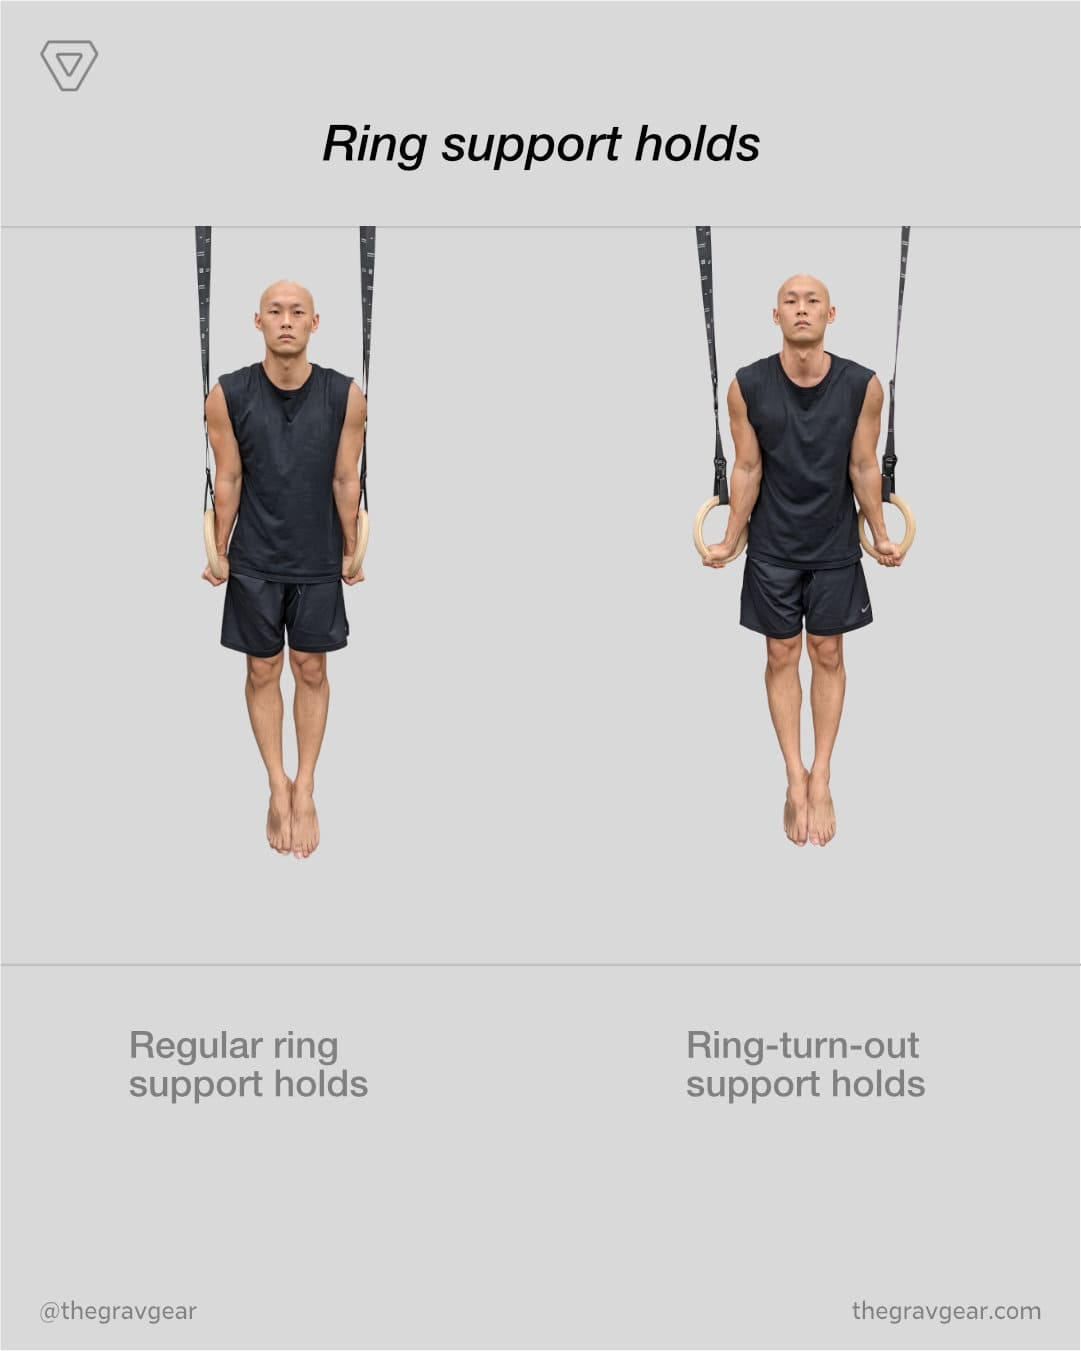 grav gymnastic rings by gravgear are perfect for ring support holds